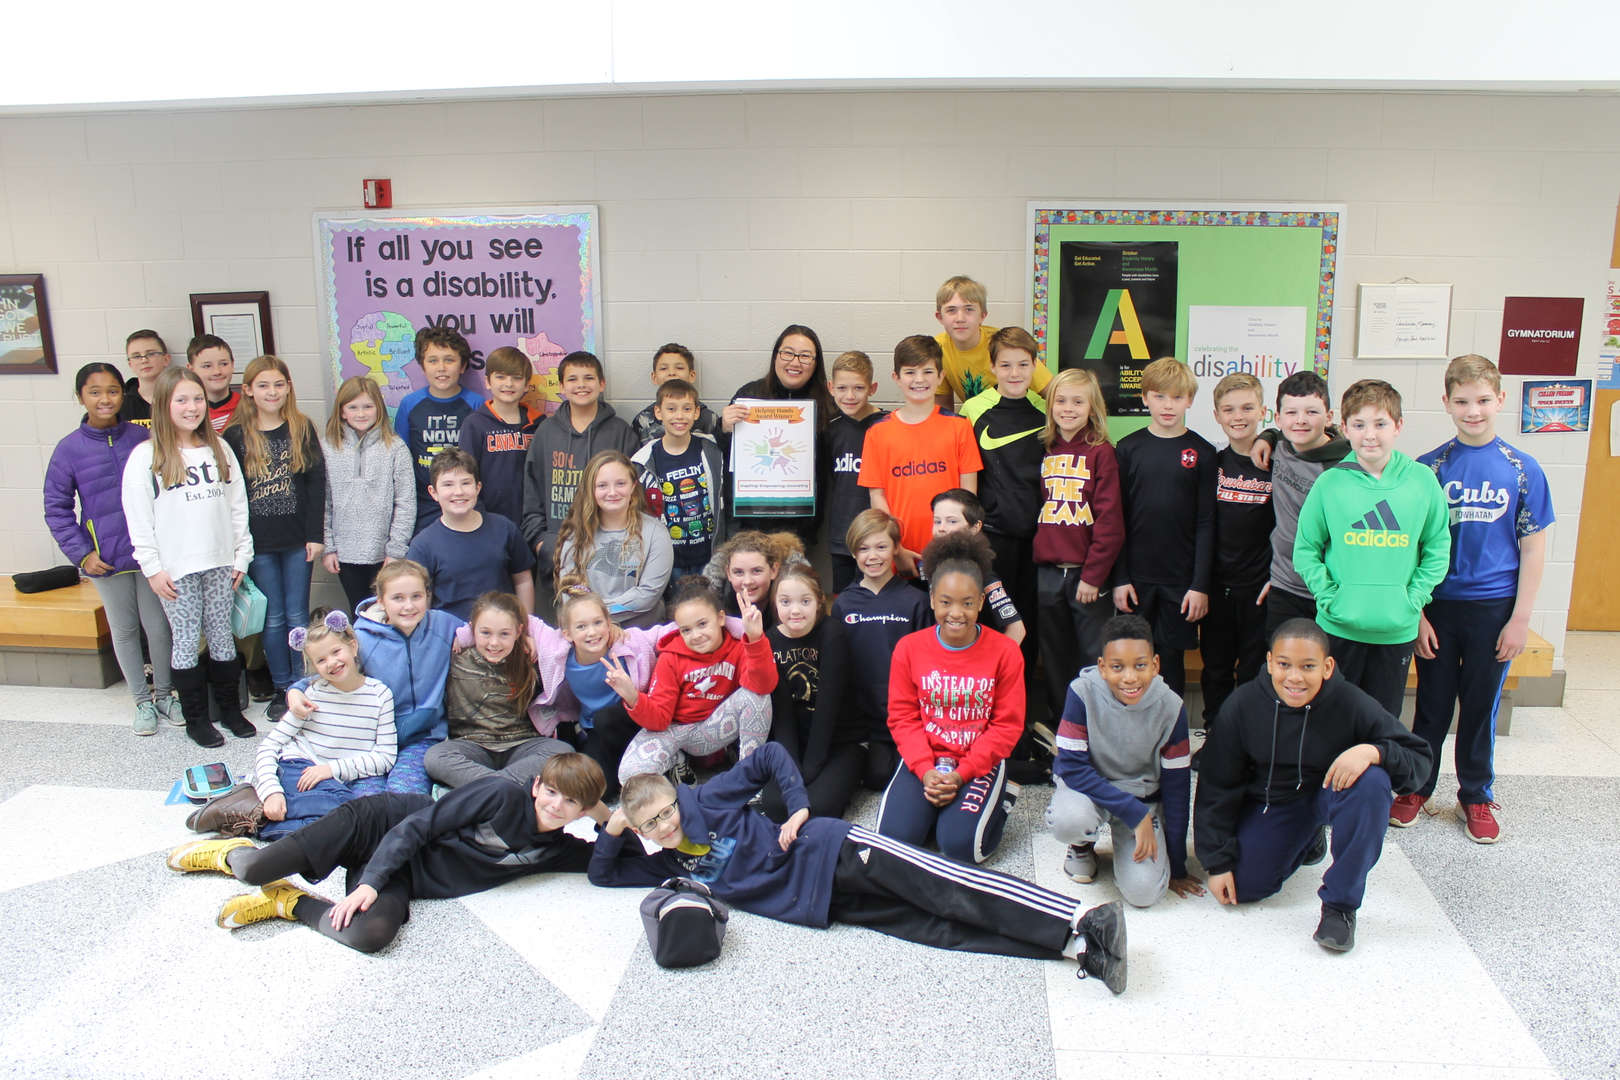 Mrs. Yoder and her class